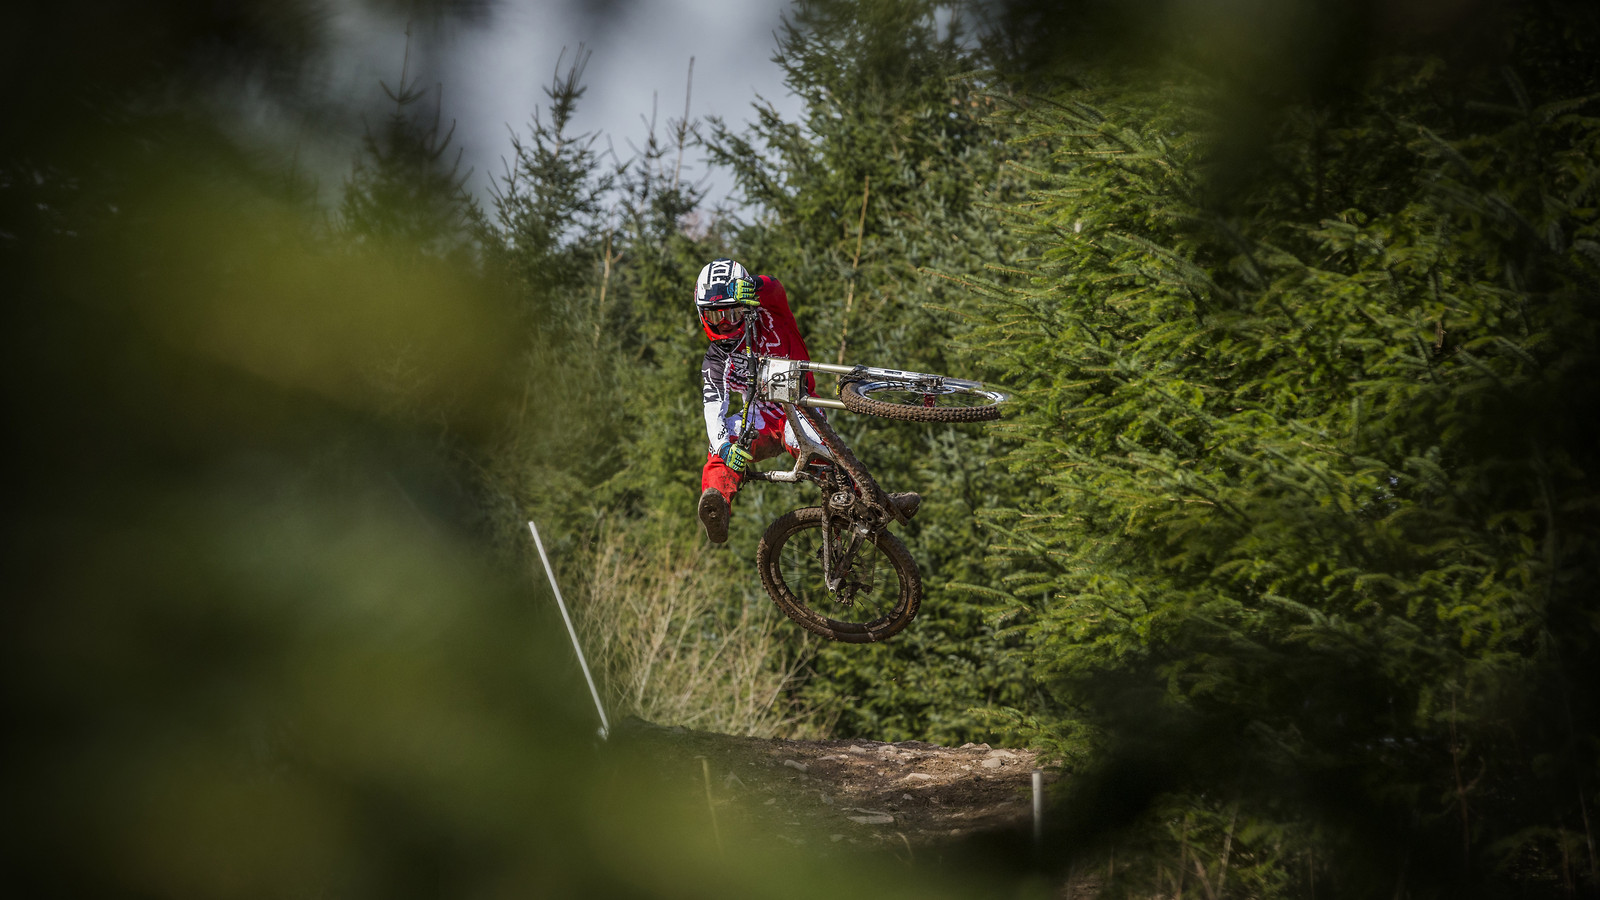 scotty mears ae bds - phunkt.com - Mountain Biking Pictures - Vital MTB